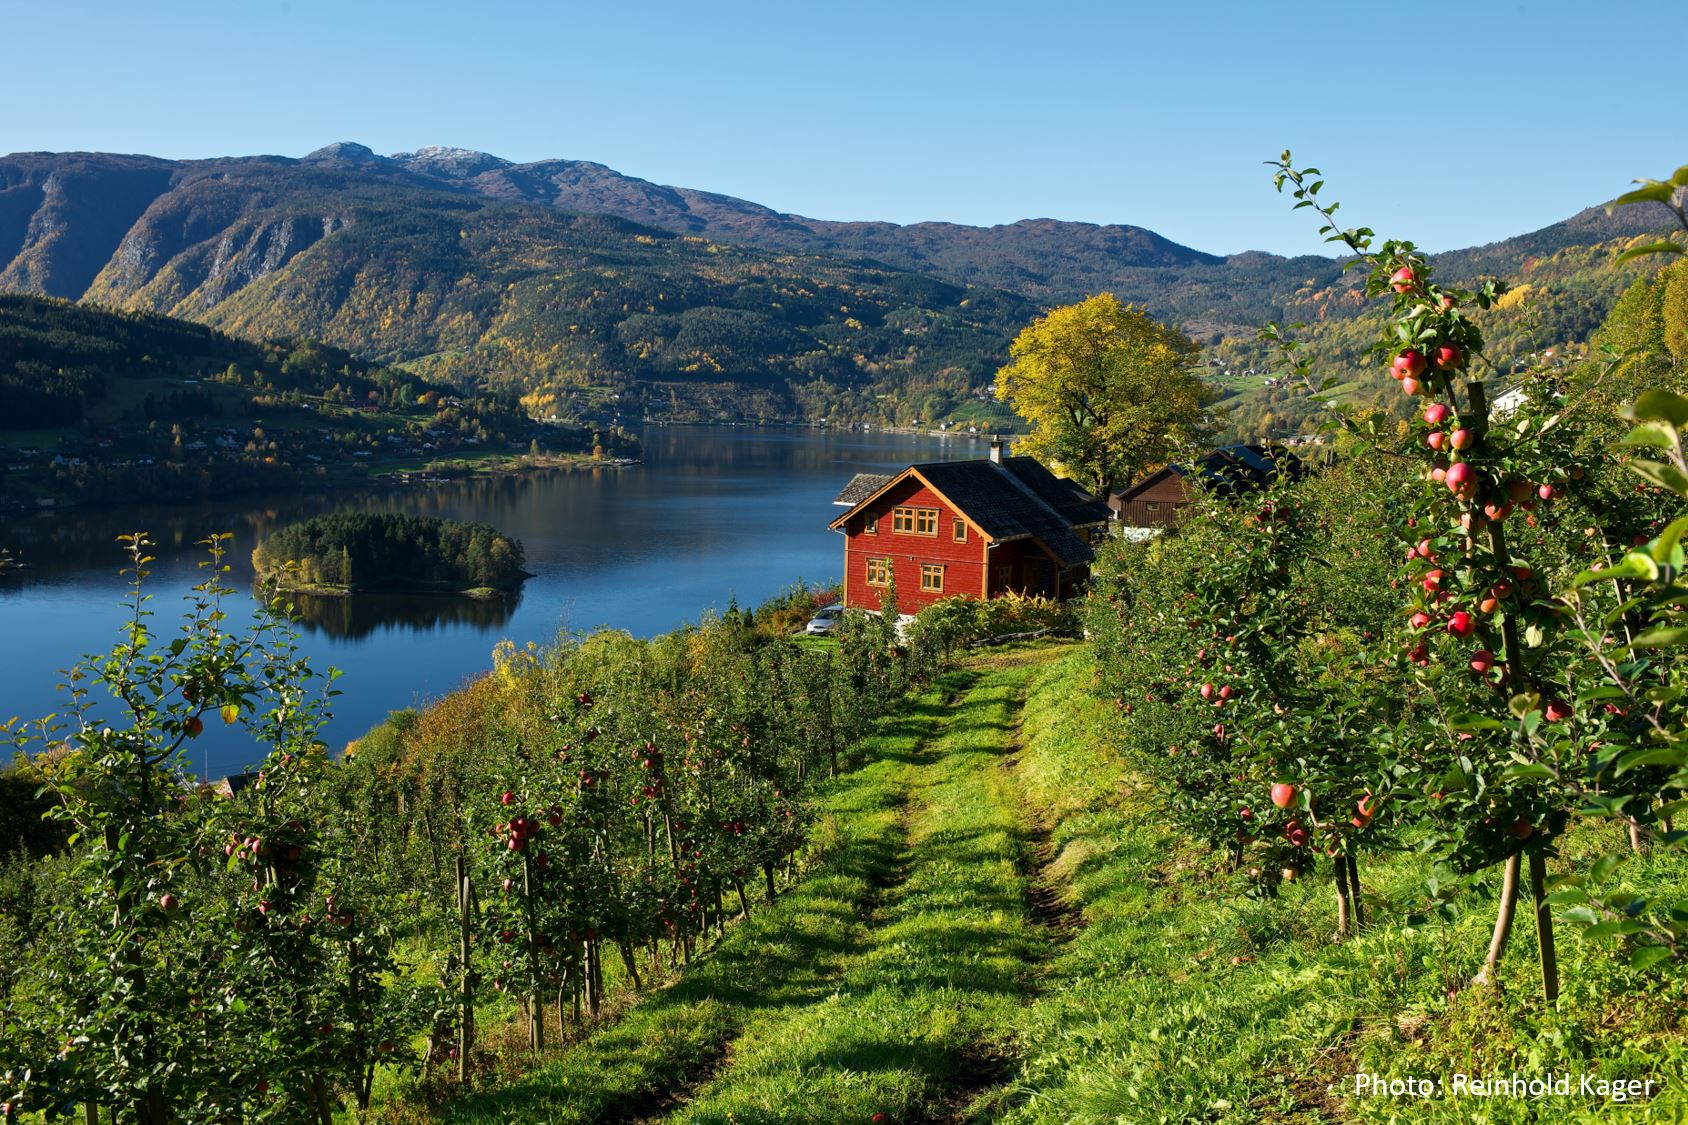 © Reinhold Kager, Travel like the locals - Syse gard i Ulvik